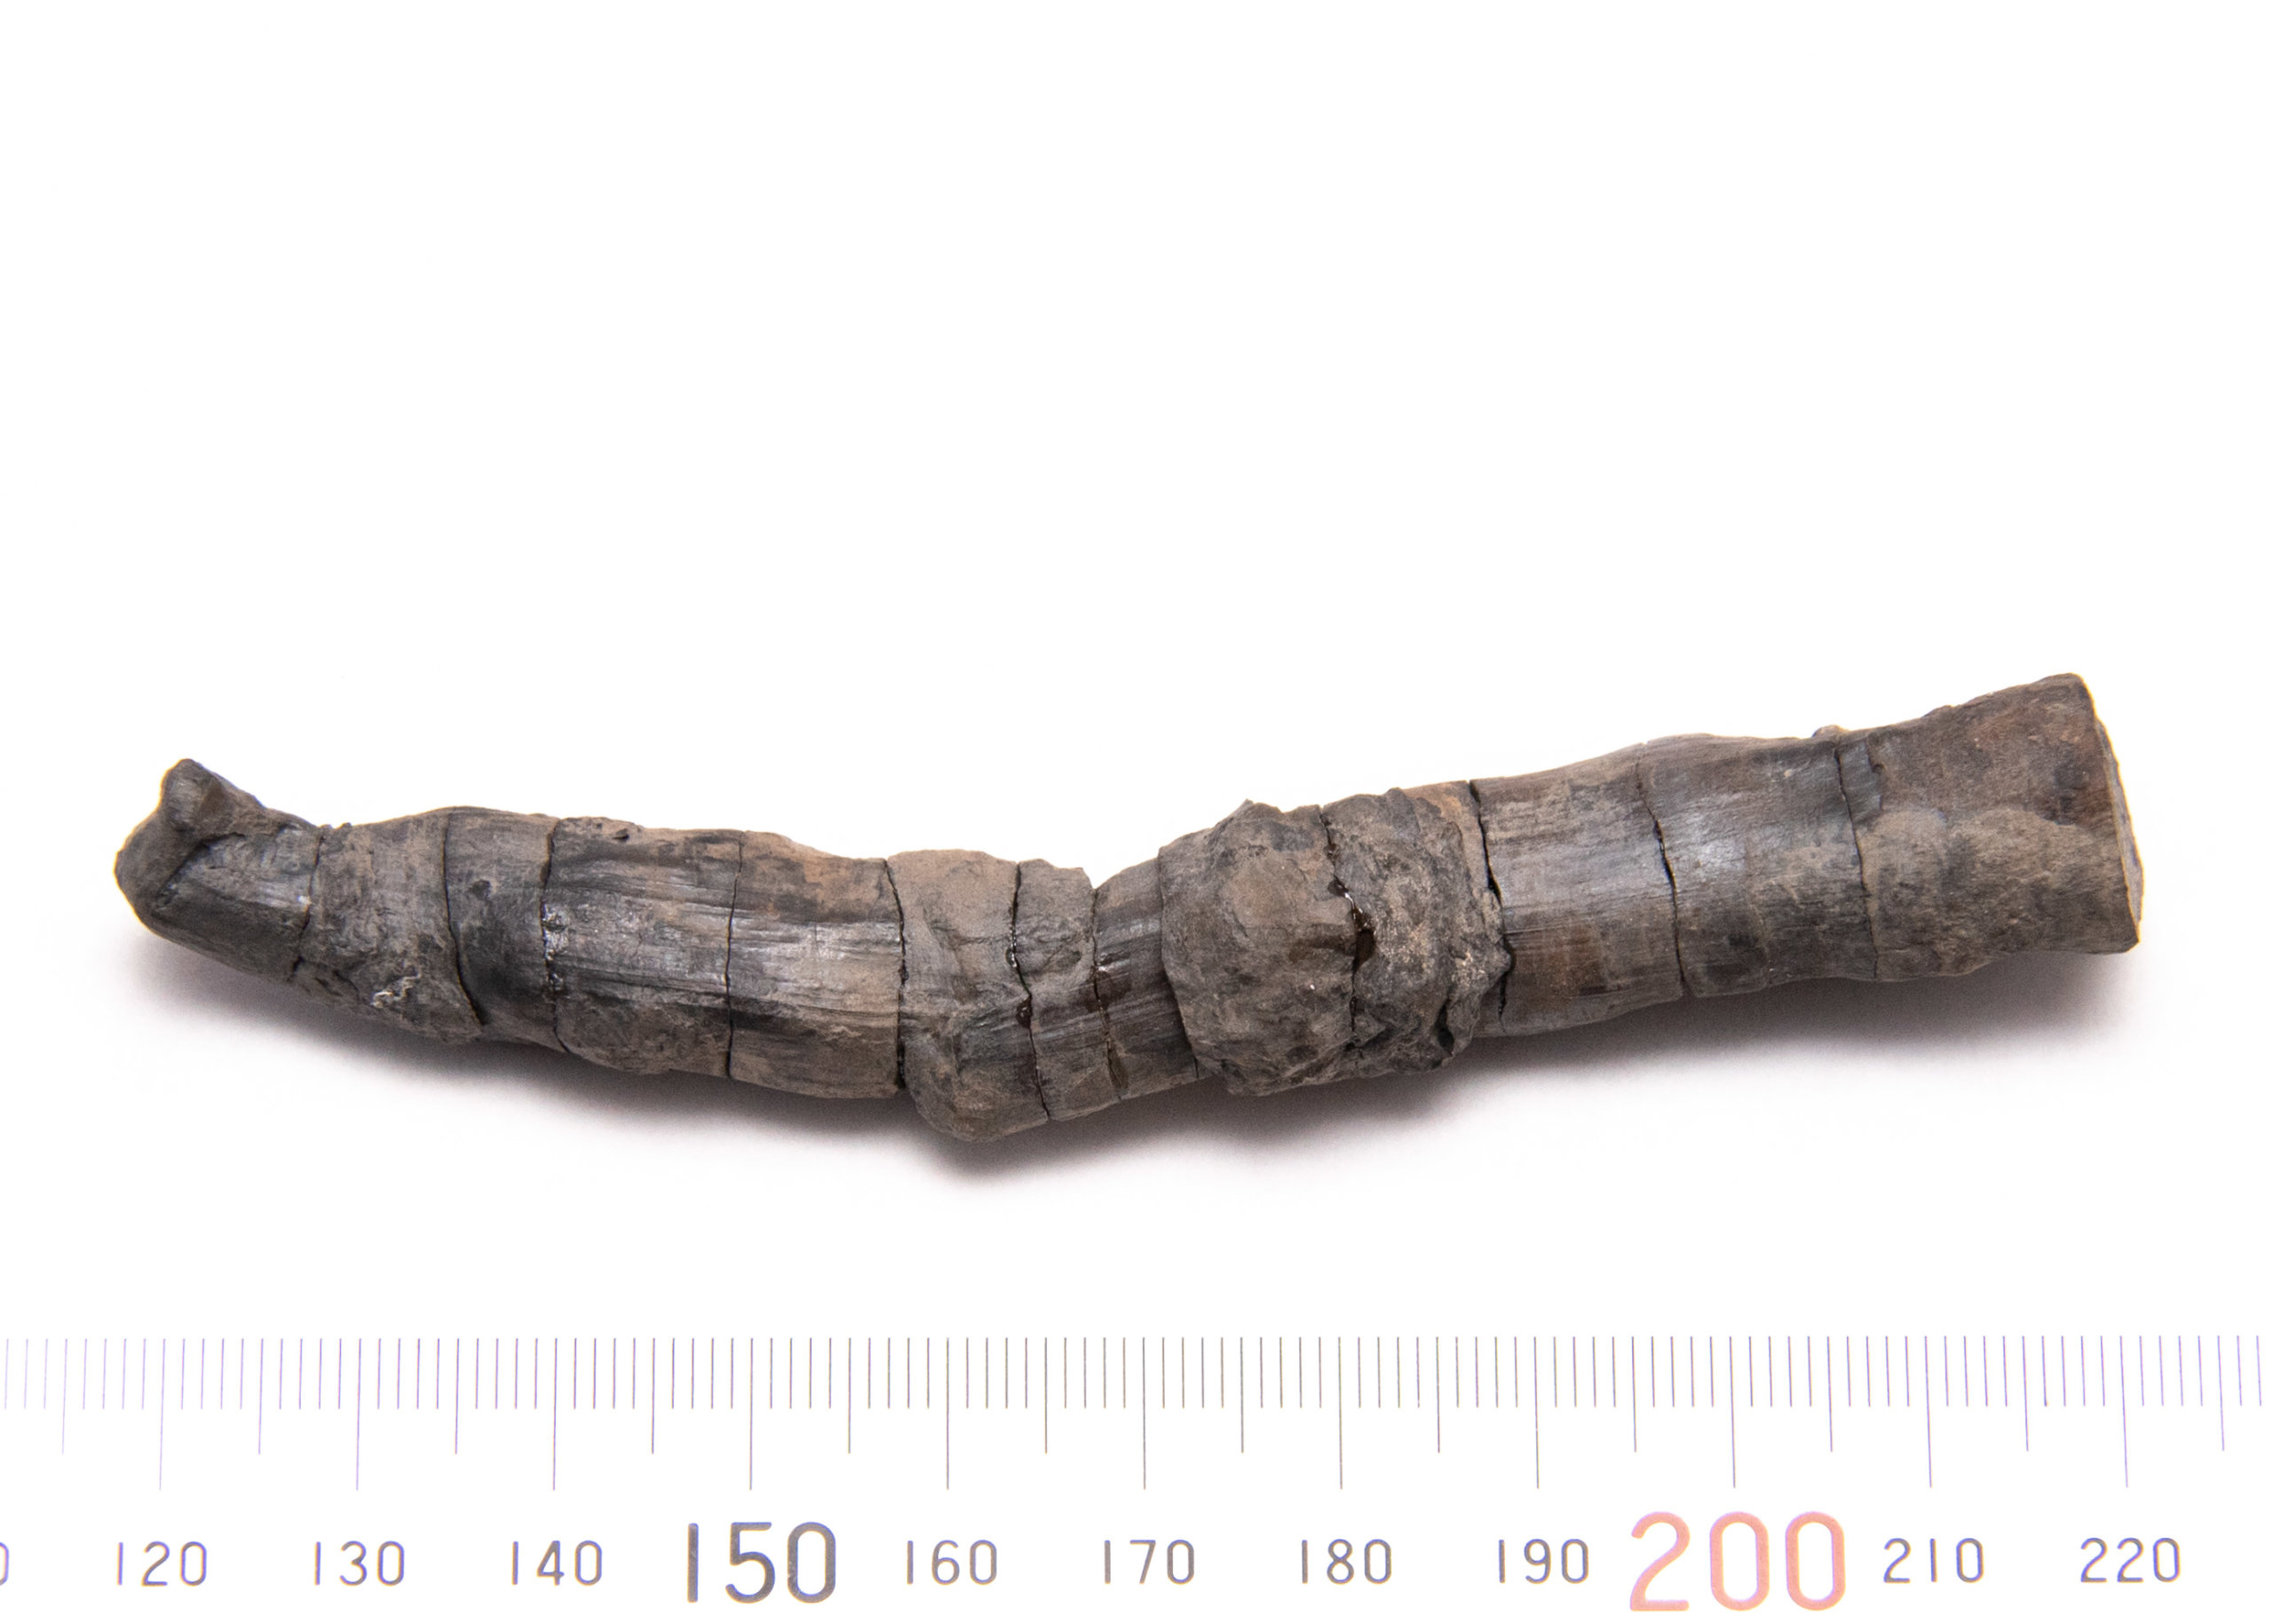 CG-0152, Petrified taproot. Rearticulated. Opposite view.